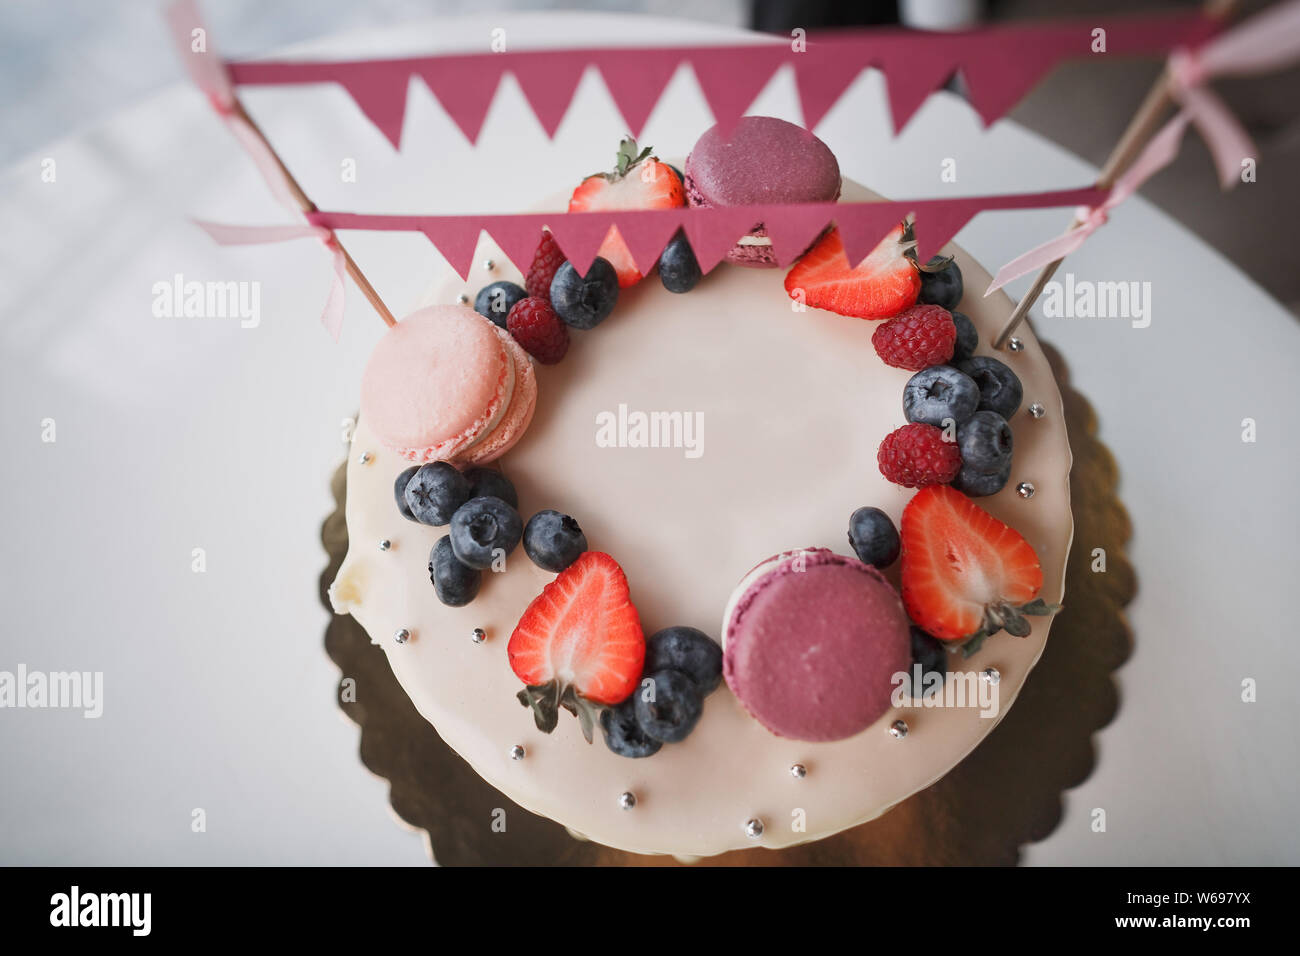 Swell Childrens Birthday Cake On The Cake There Are Raspberry Berries Funny Birthday Cards Online Inifodamsfinfo